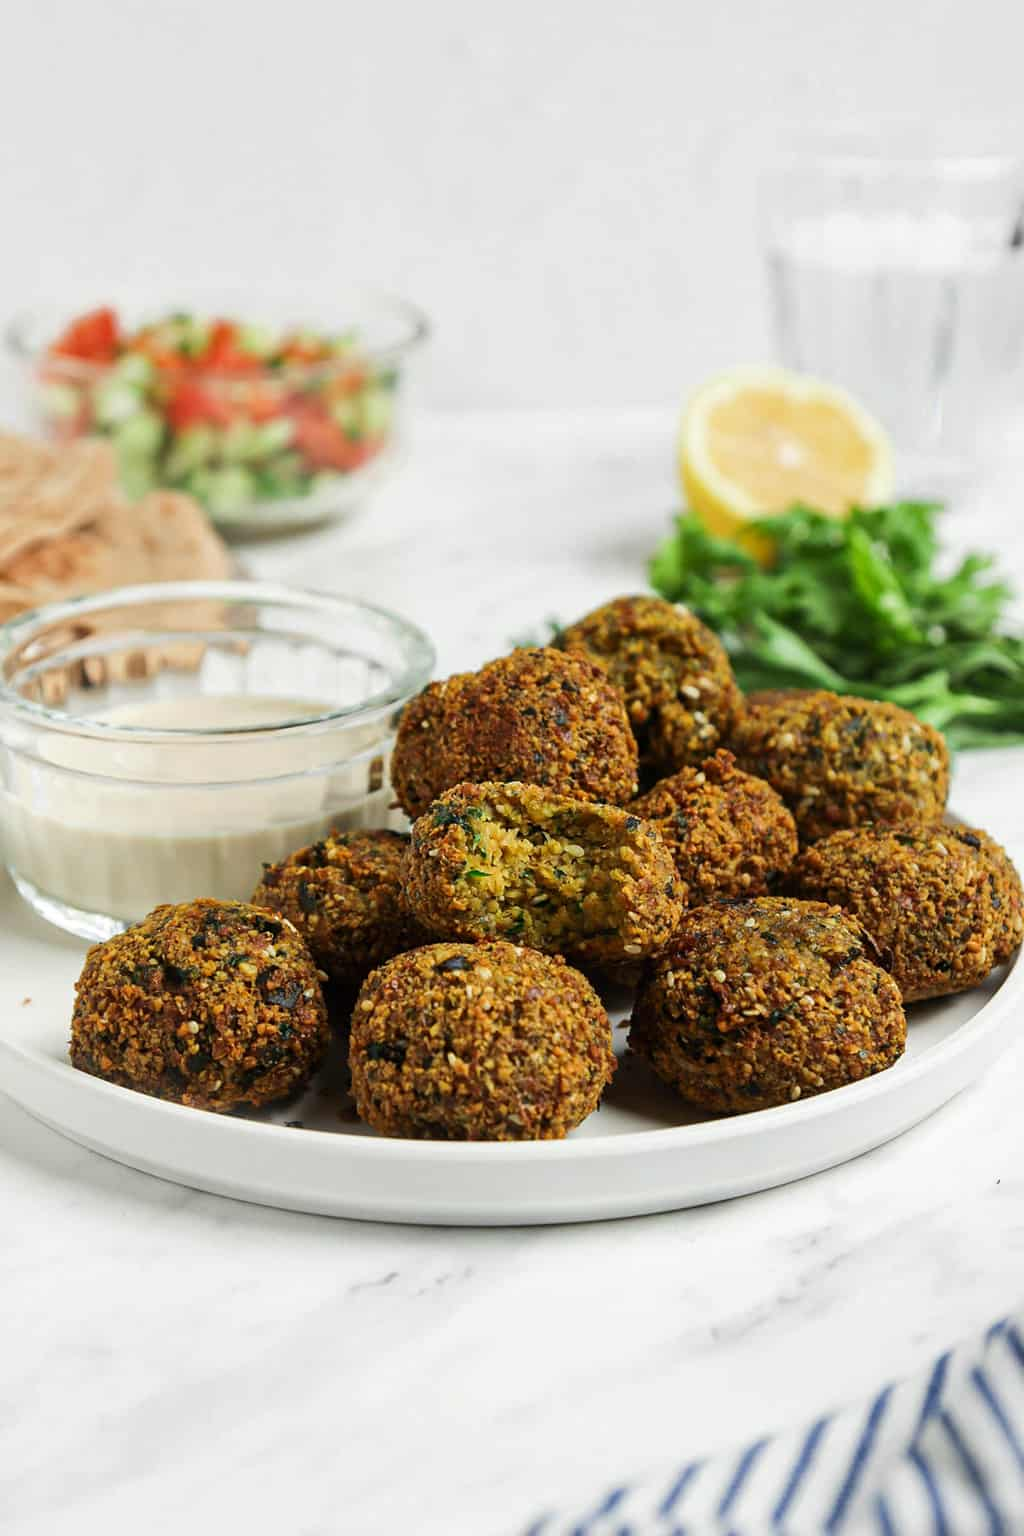 front view of authentic falafel on white plate with sauce